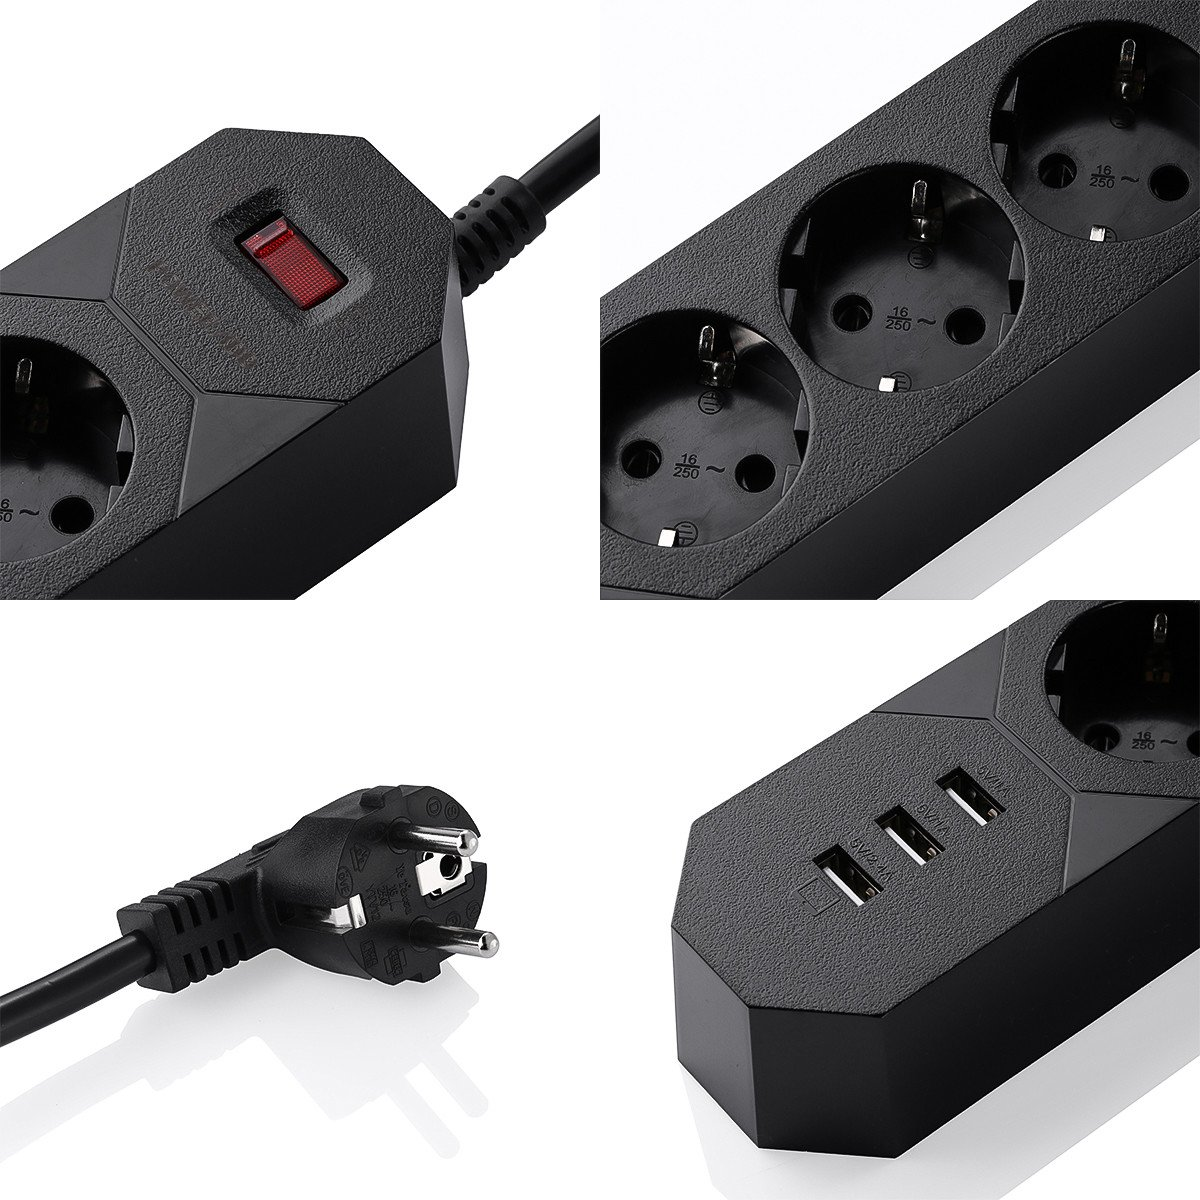 Update POWERADD Cordon 1.8 m/ètres Multiprises Parasurtenseur//parafoudre Support QC3.0 USB 5-Outlet Power Strip avec 4 Ports USB de Recharge avec Un QC3.0 USB de Recharge